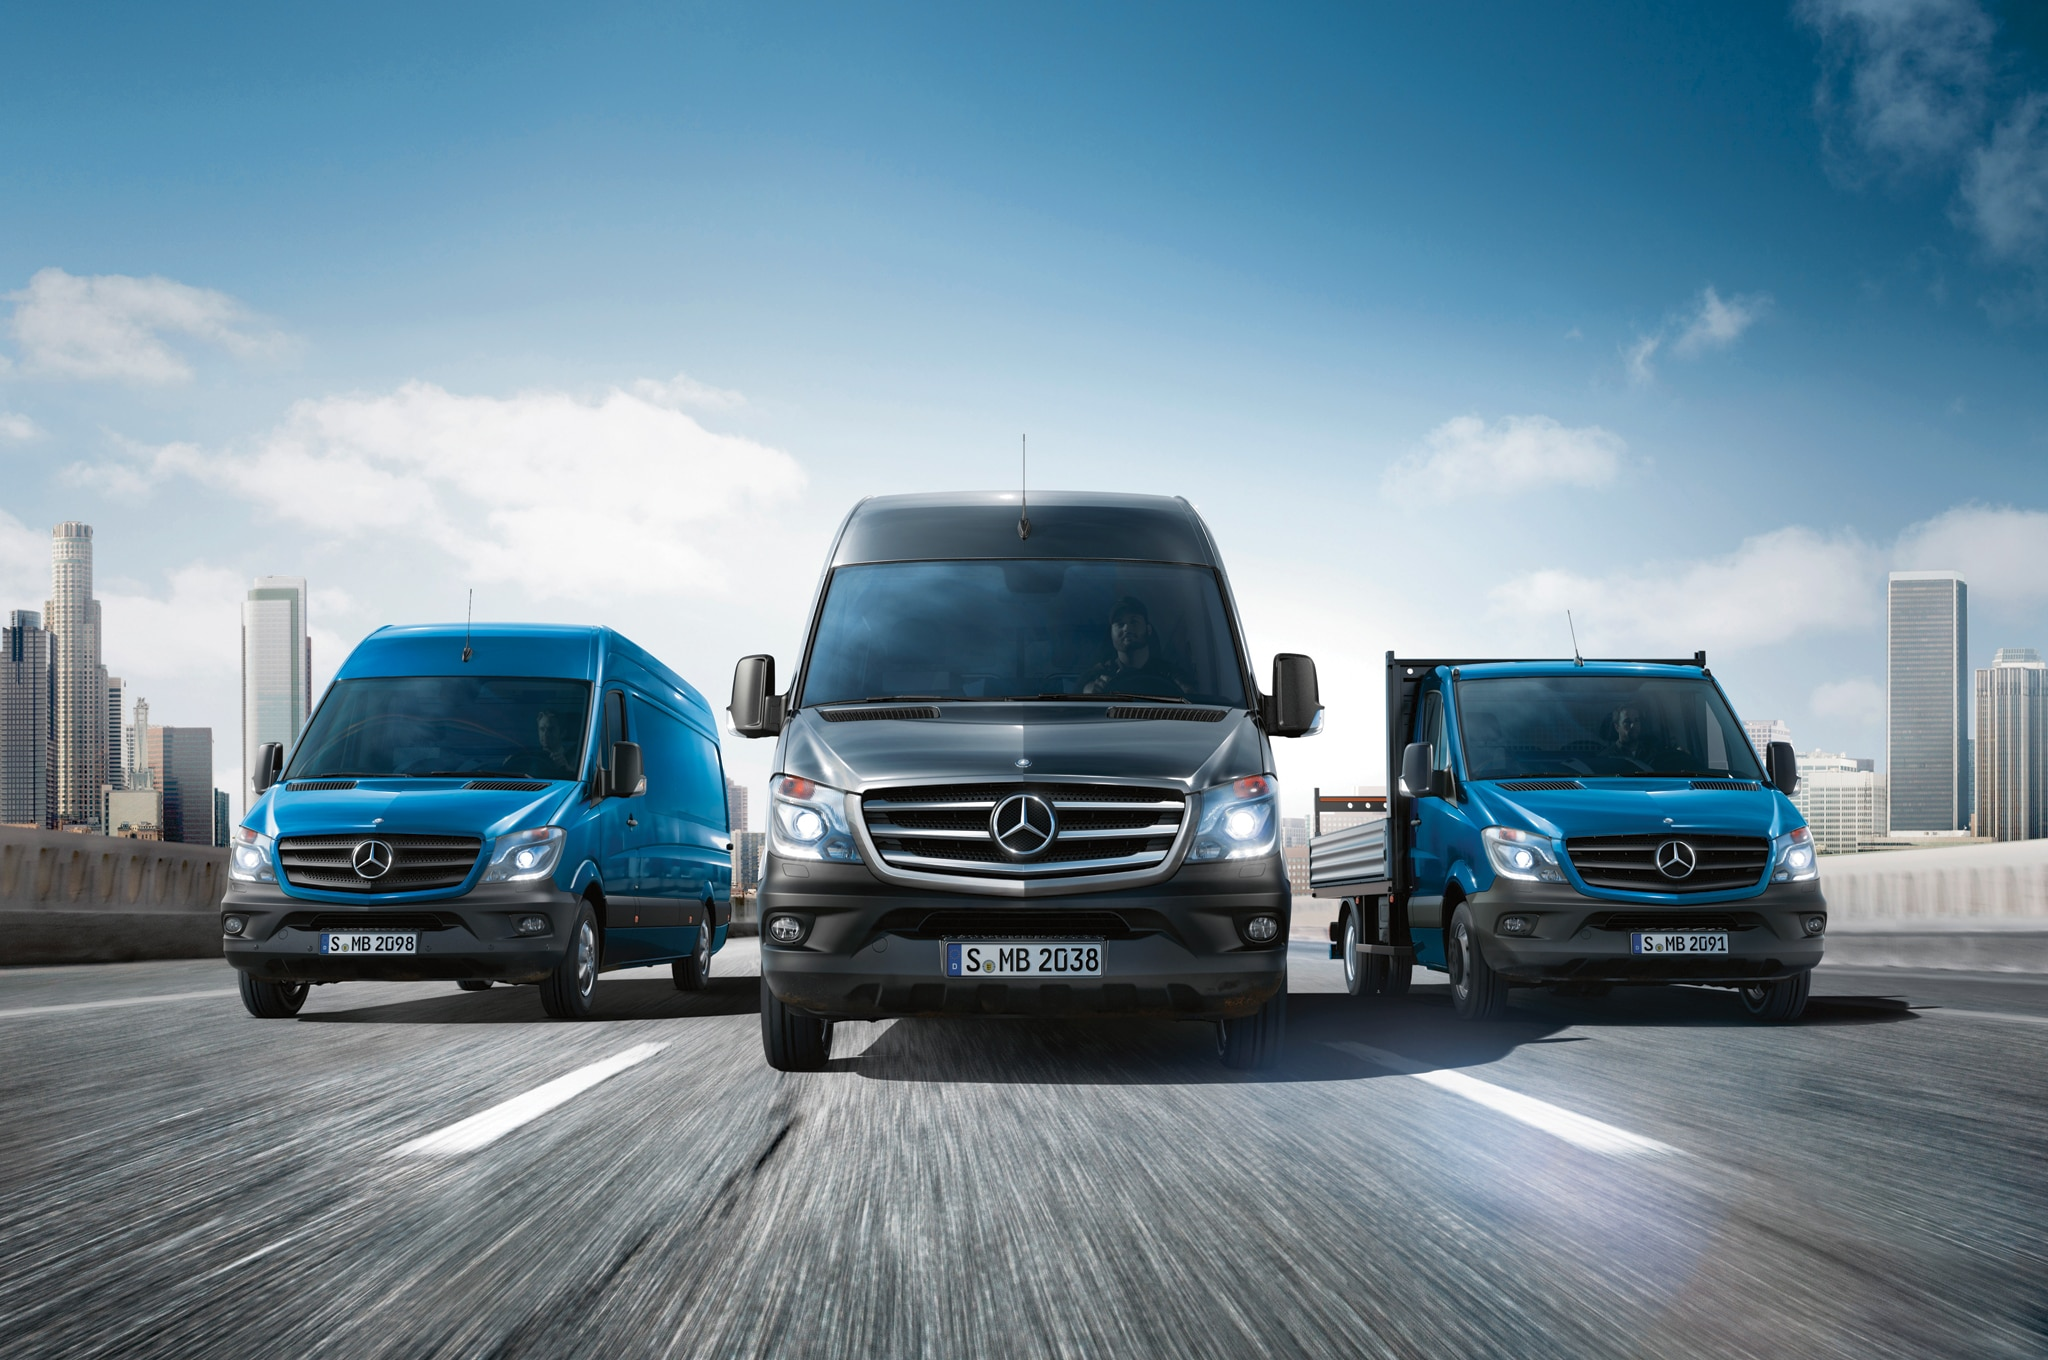 2014 Mercedes Benz Sprinter Front End In Motion 01